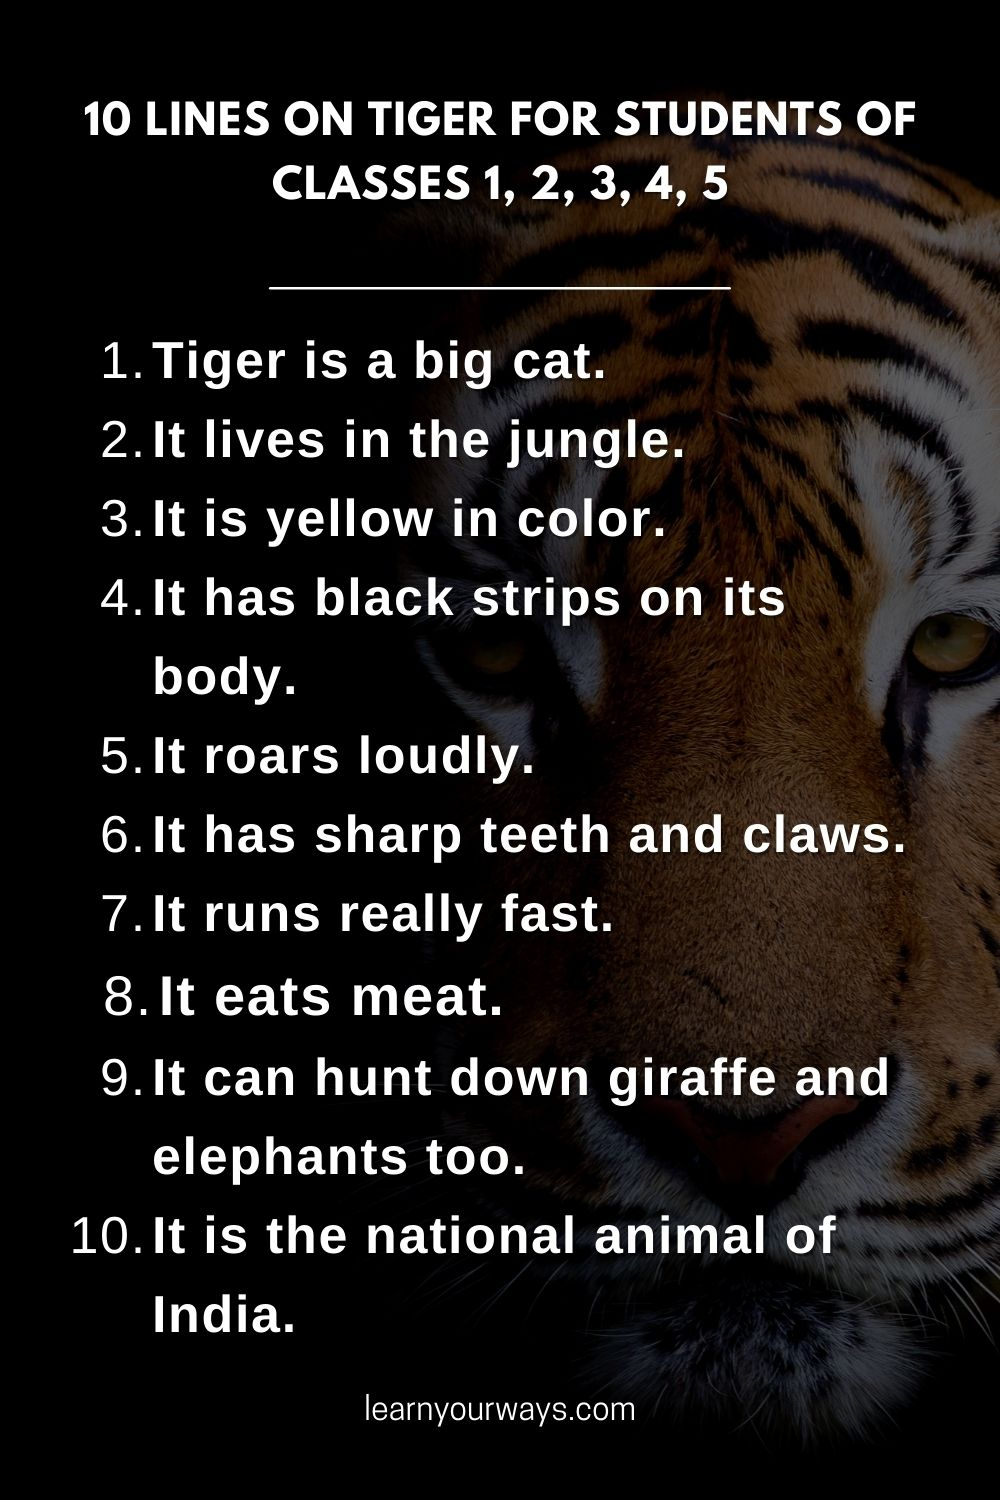 10 lines essay on Tiger for students